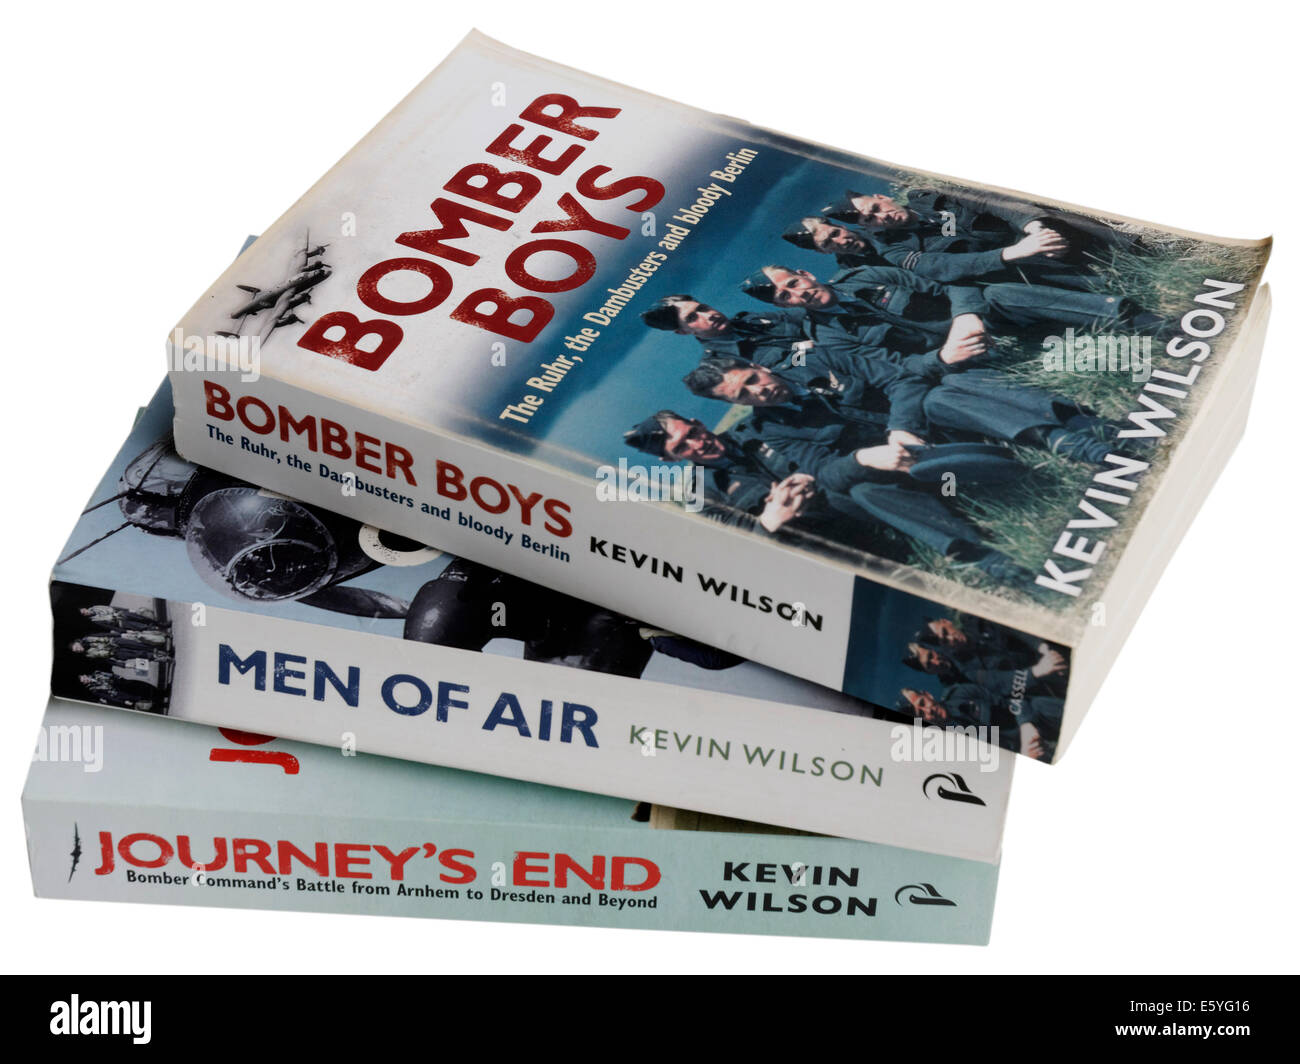 The Bomber Boys Trilogy by Kevin Wilson - Stock Image